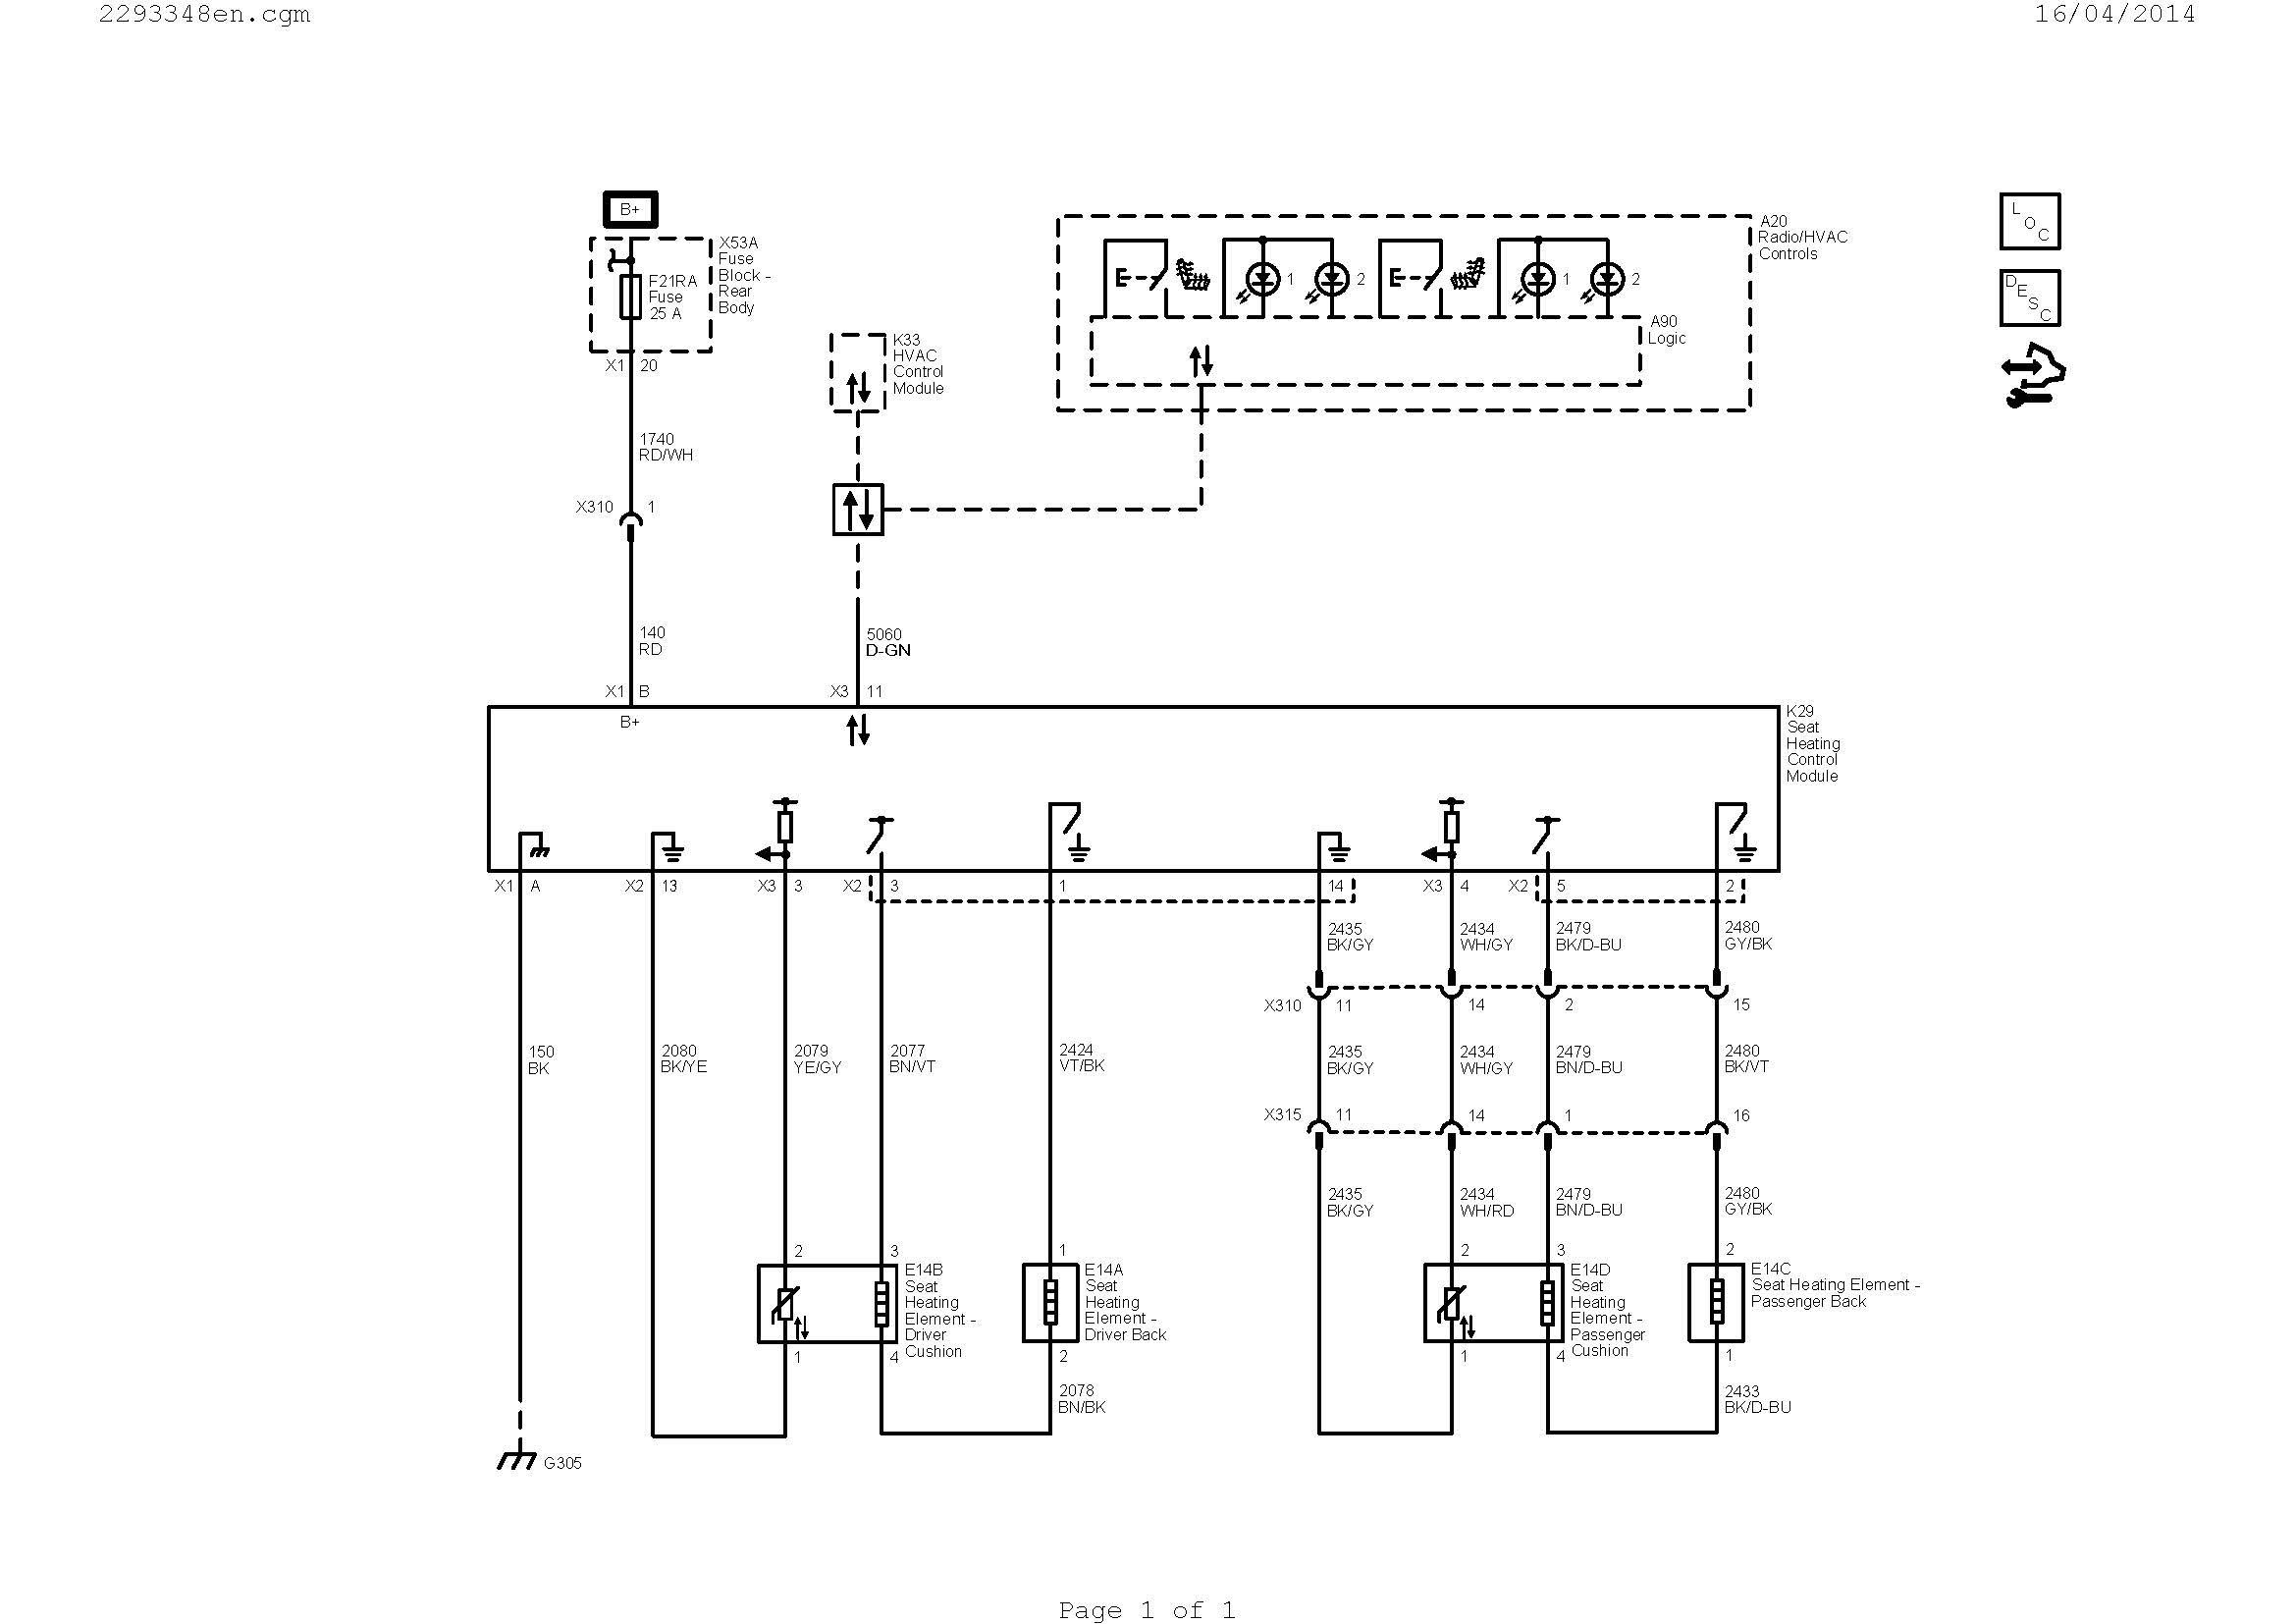 boiler wiring diagram Download-Guitar Cable Wiring Diagram Valid Wiring Diagram Guitar Fresh Hvac Diagram Best Hvac Diagram 0d 13-c